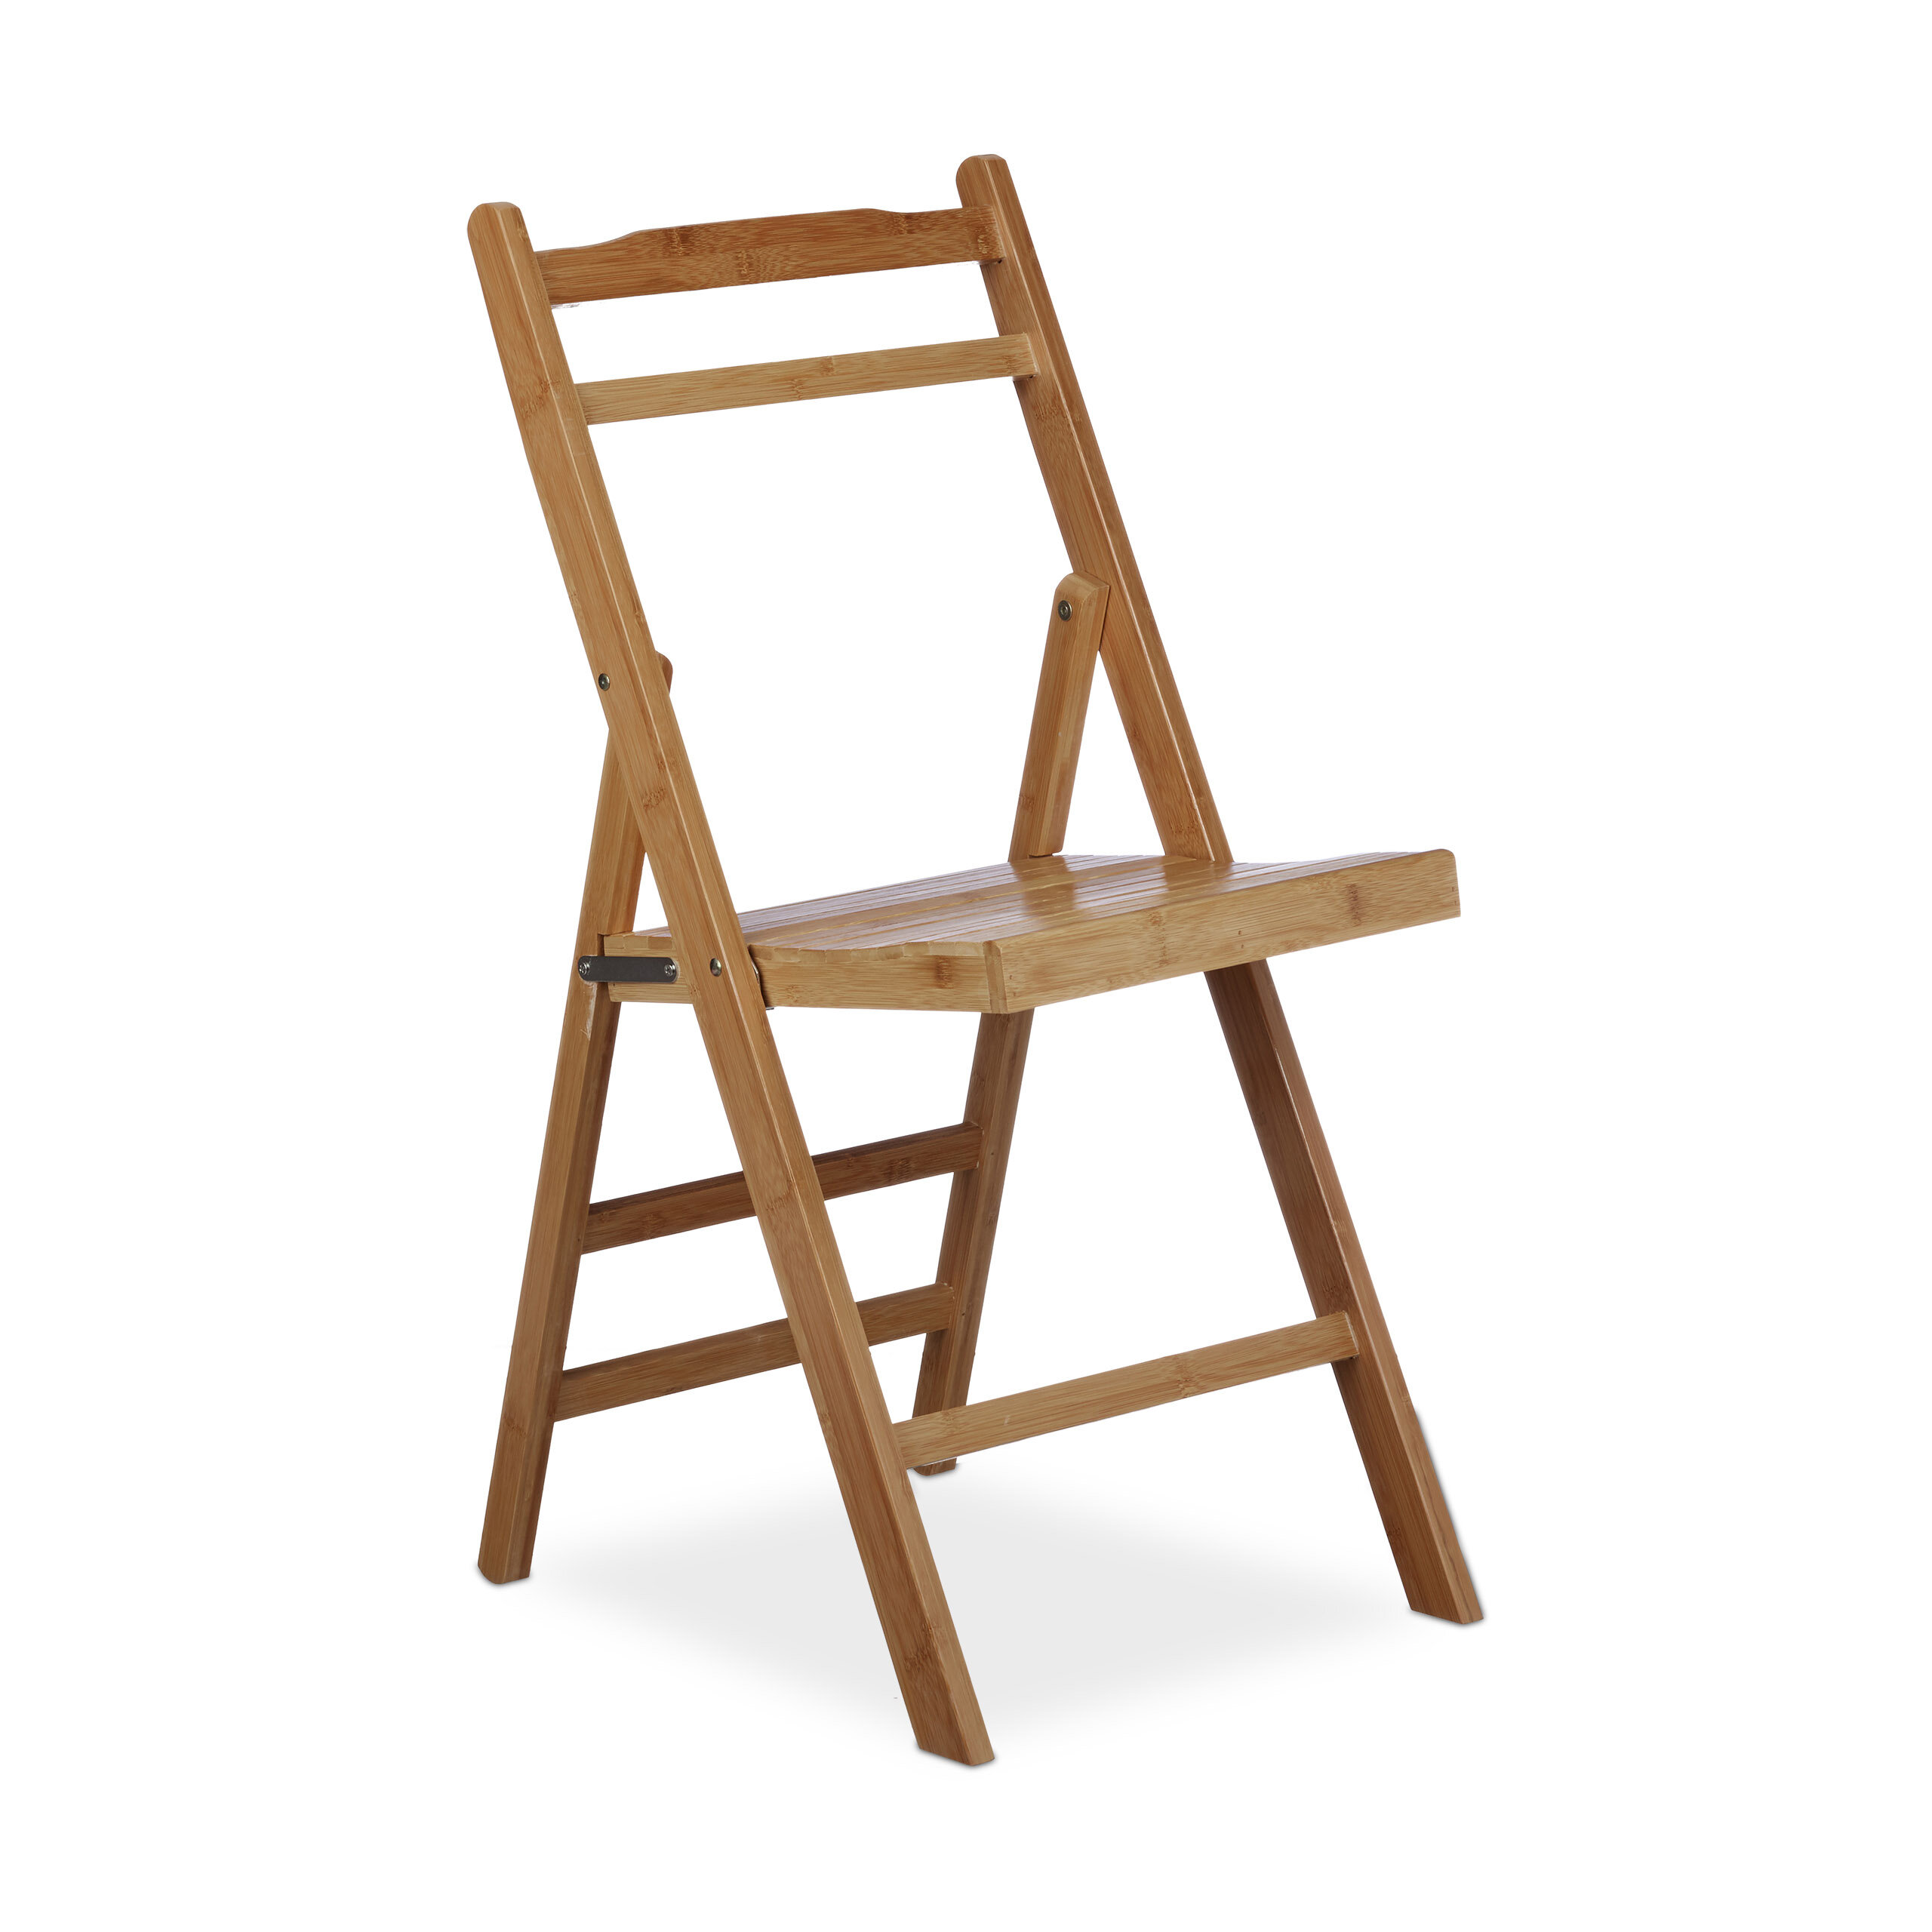 Relaxdays Bamboo Folding Chair & Reviews